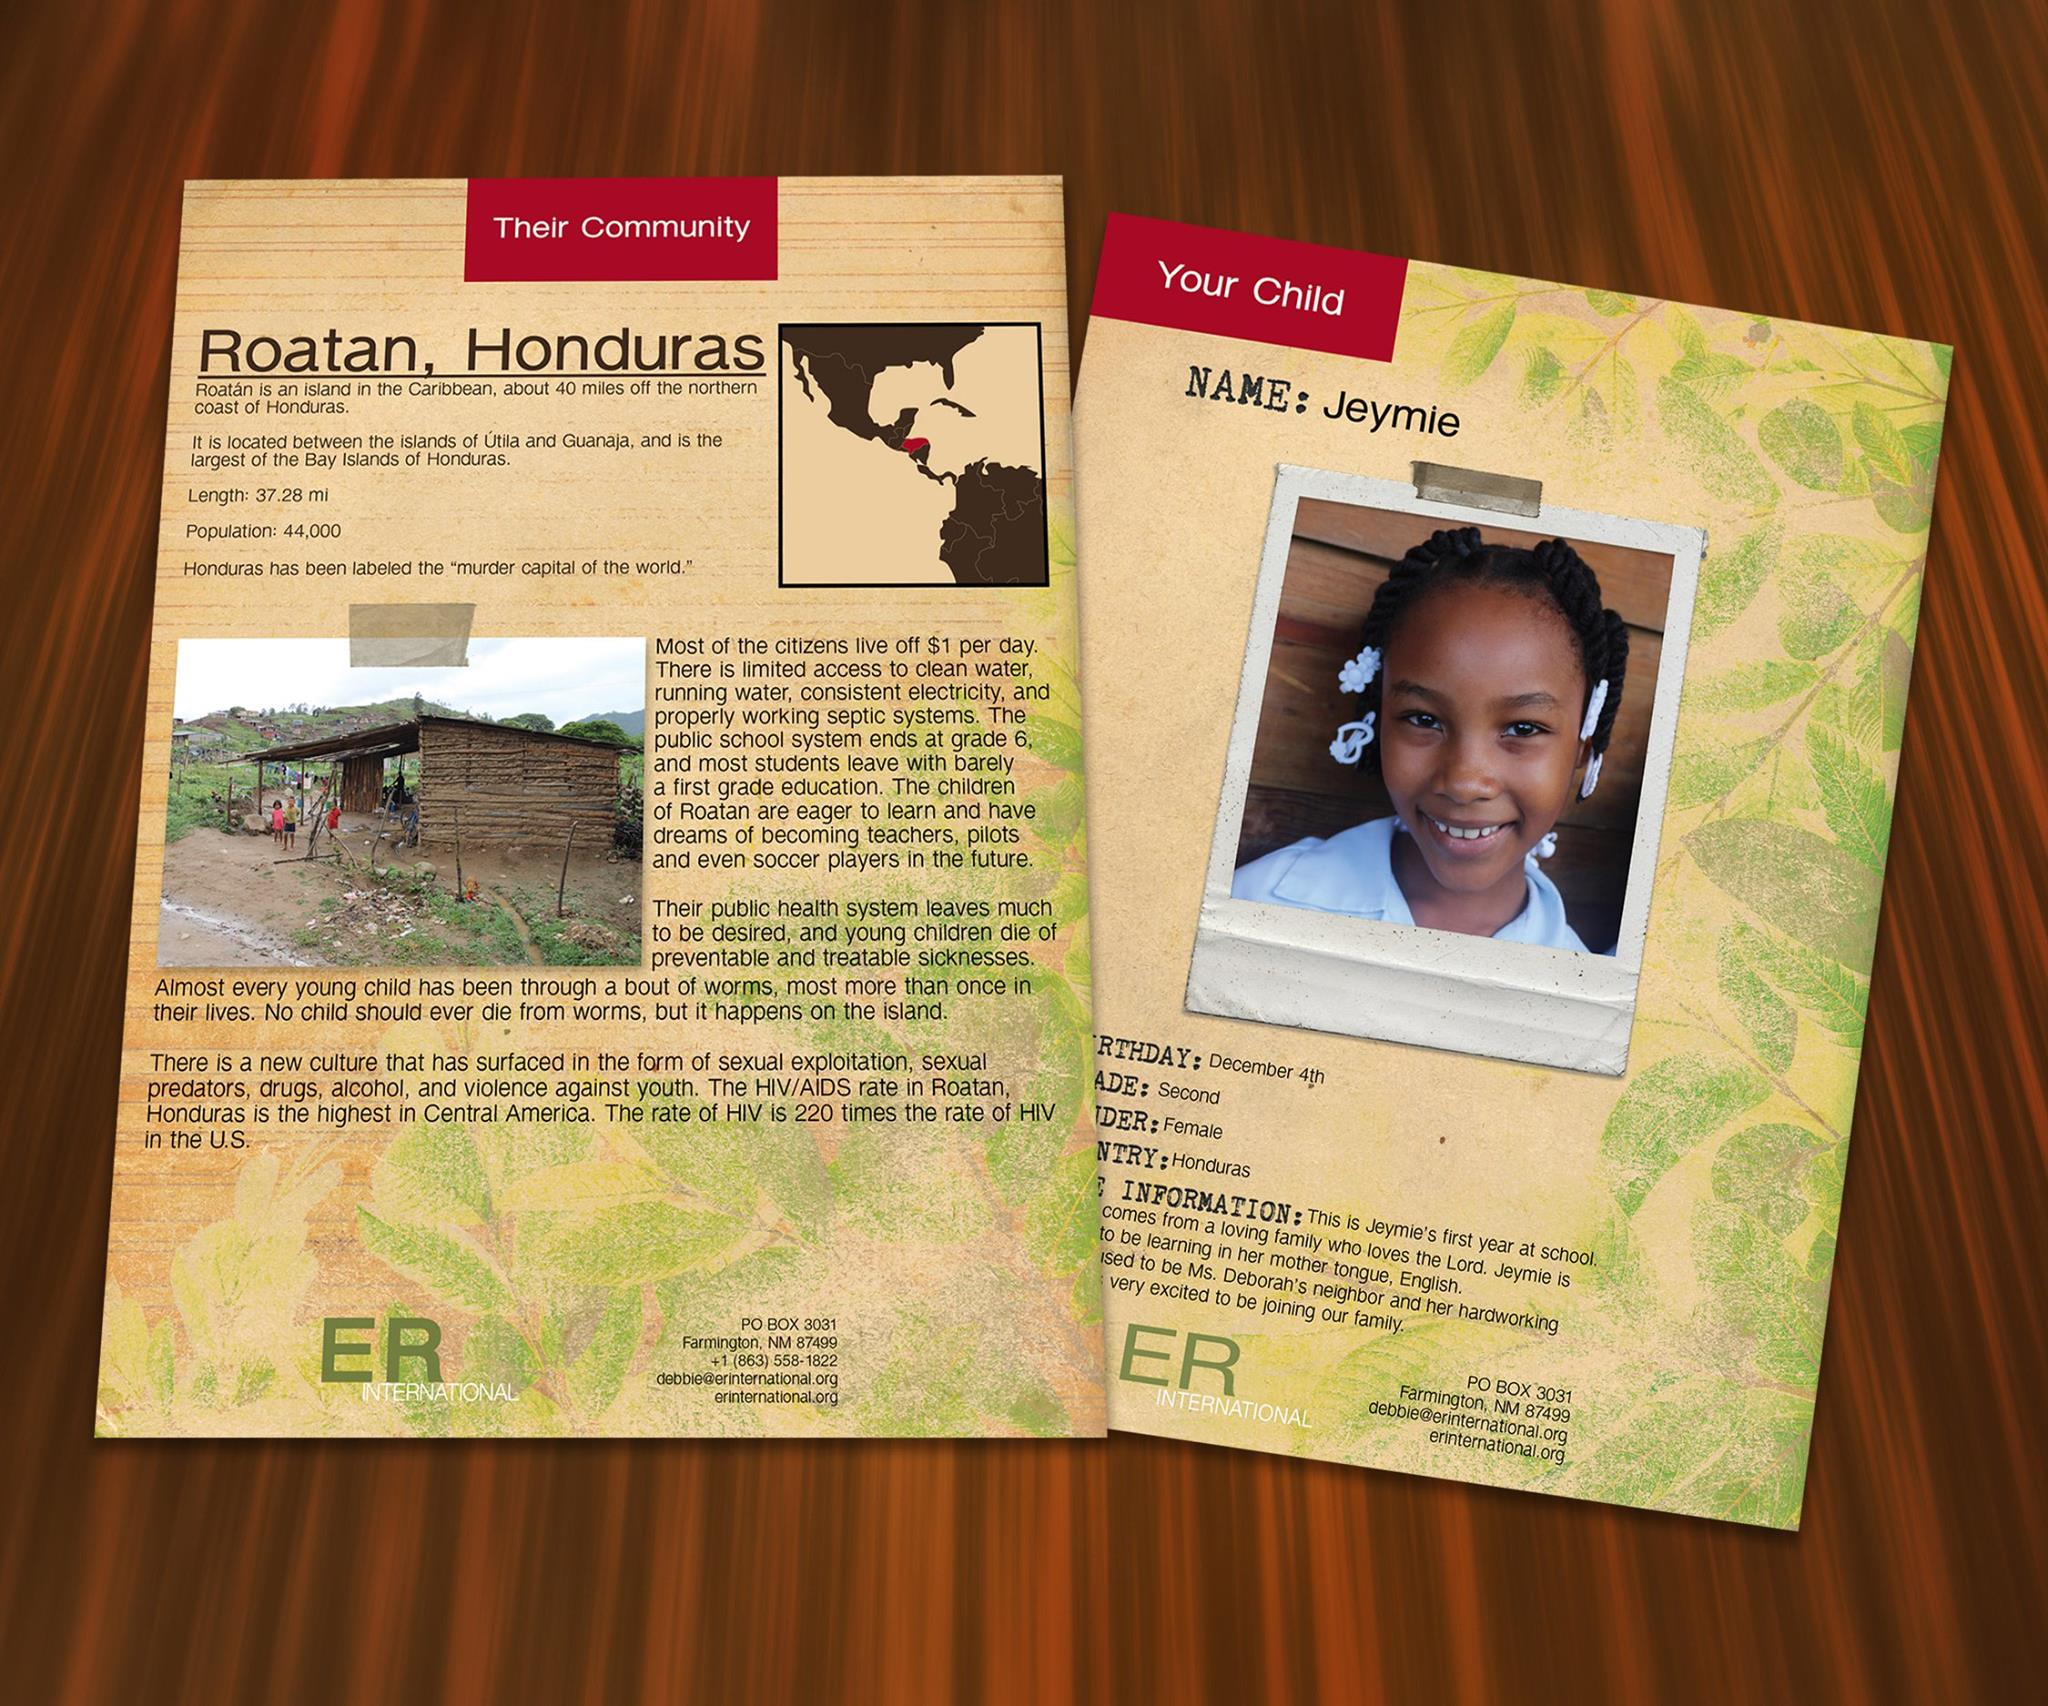 ER International - I created all of their printable of their child sponsorships. This included business cards, information about their communities and pamphlets.